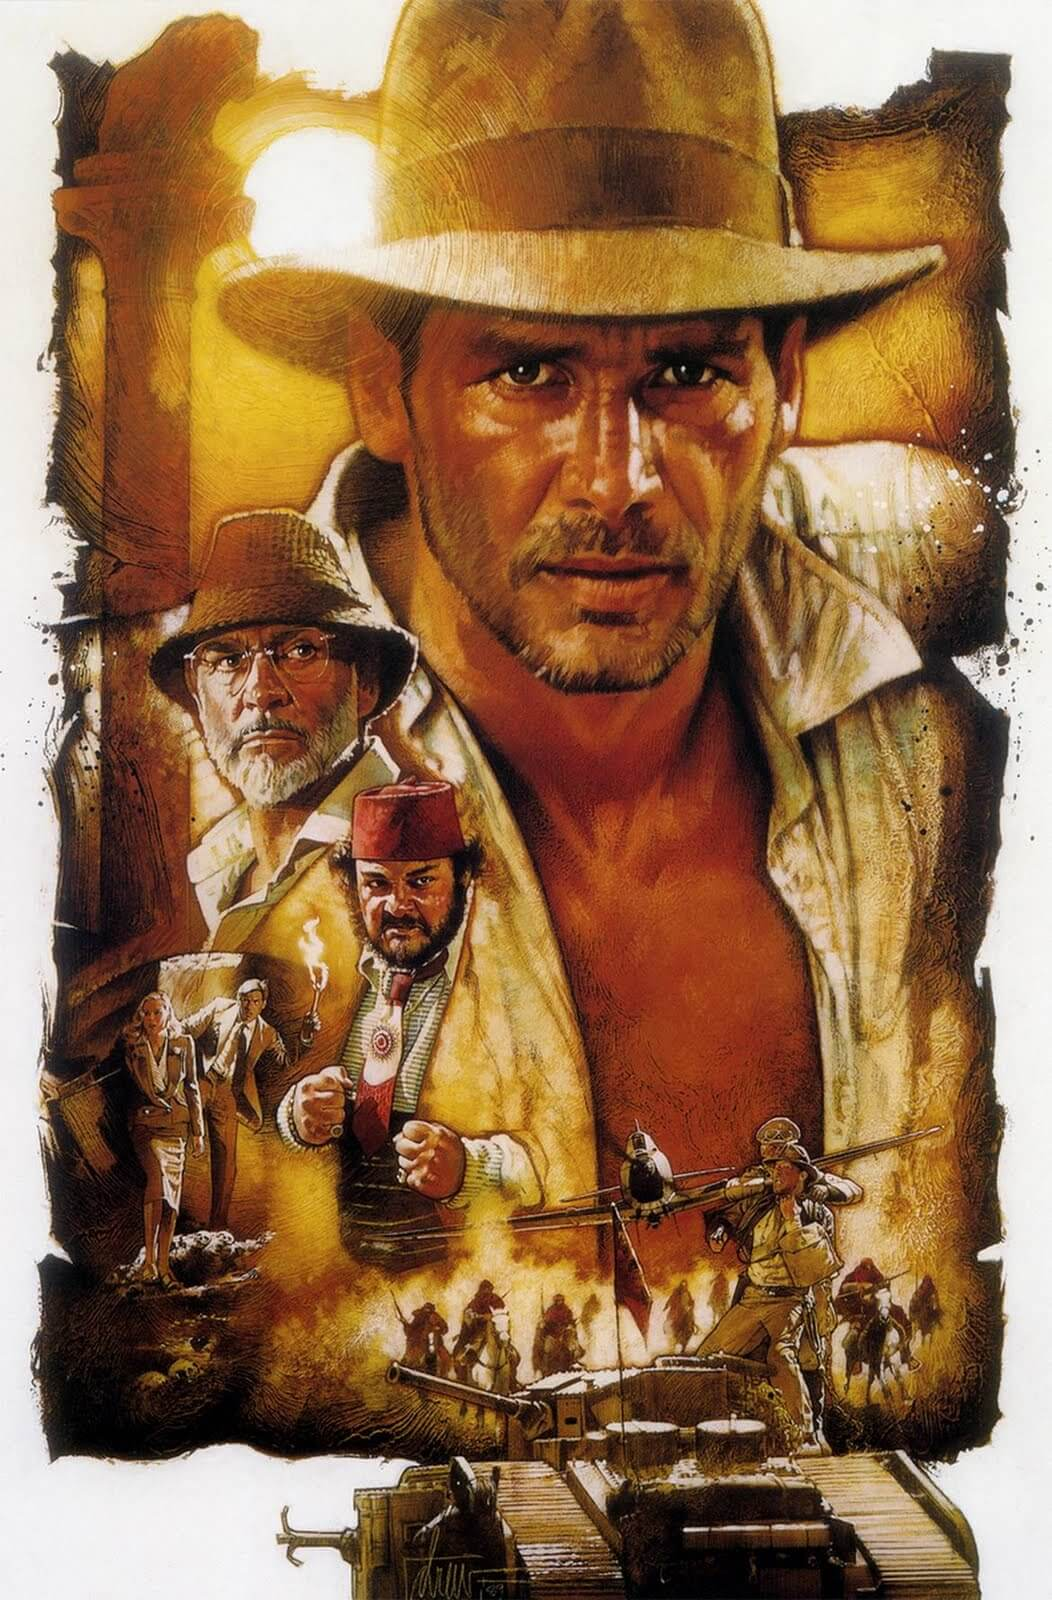 drew-struzan-oldskull-Indiana-Jones